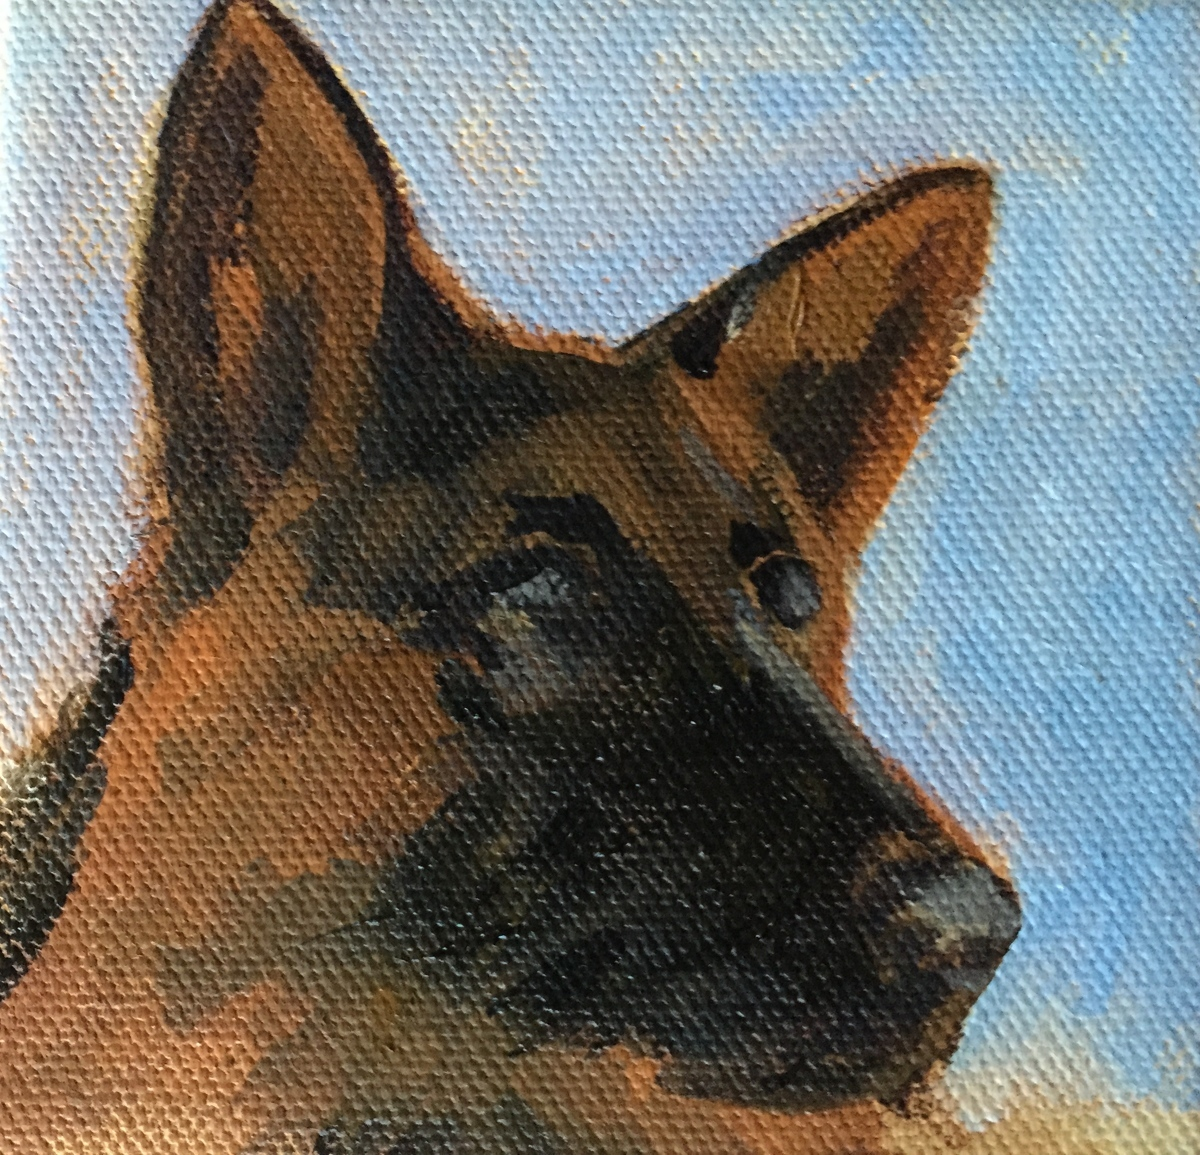 German Shepherd (large view)